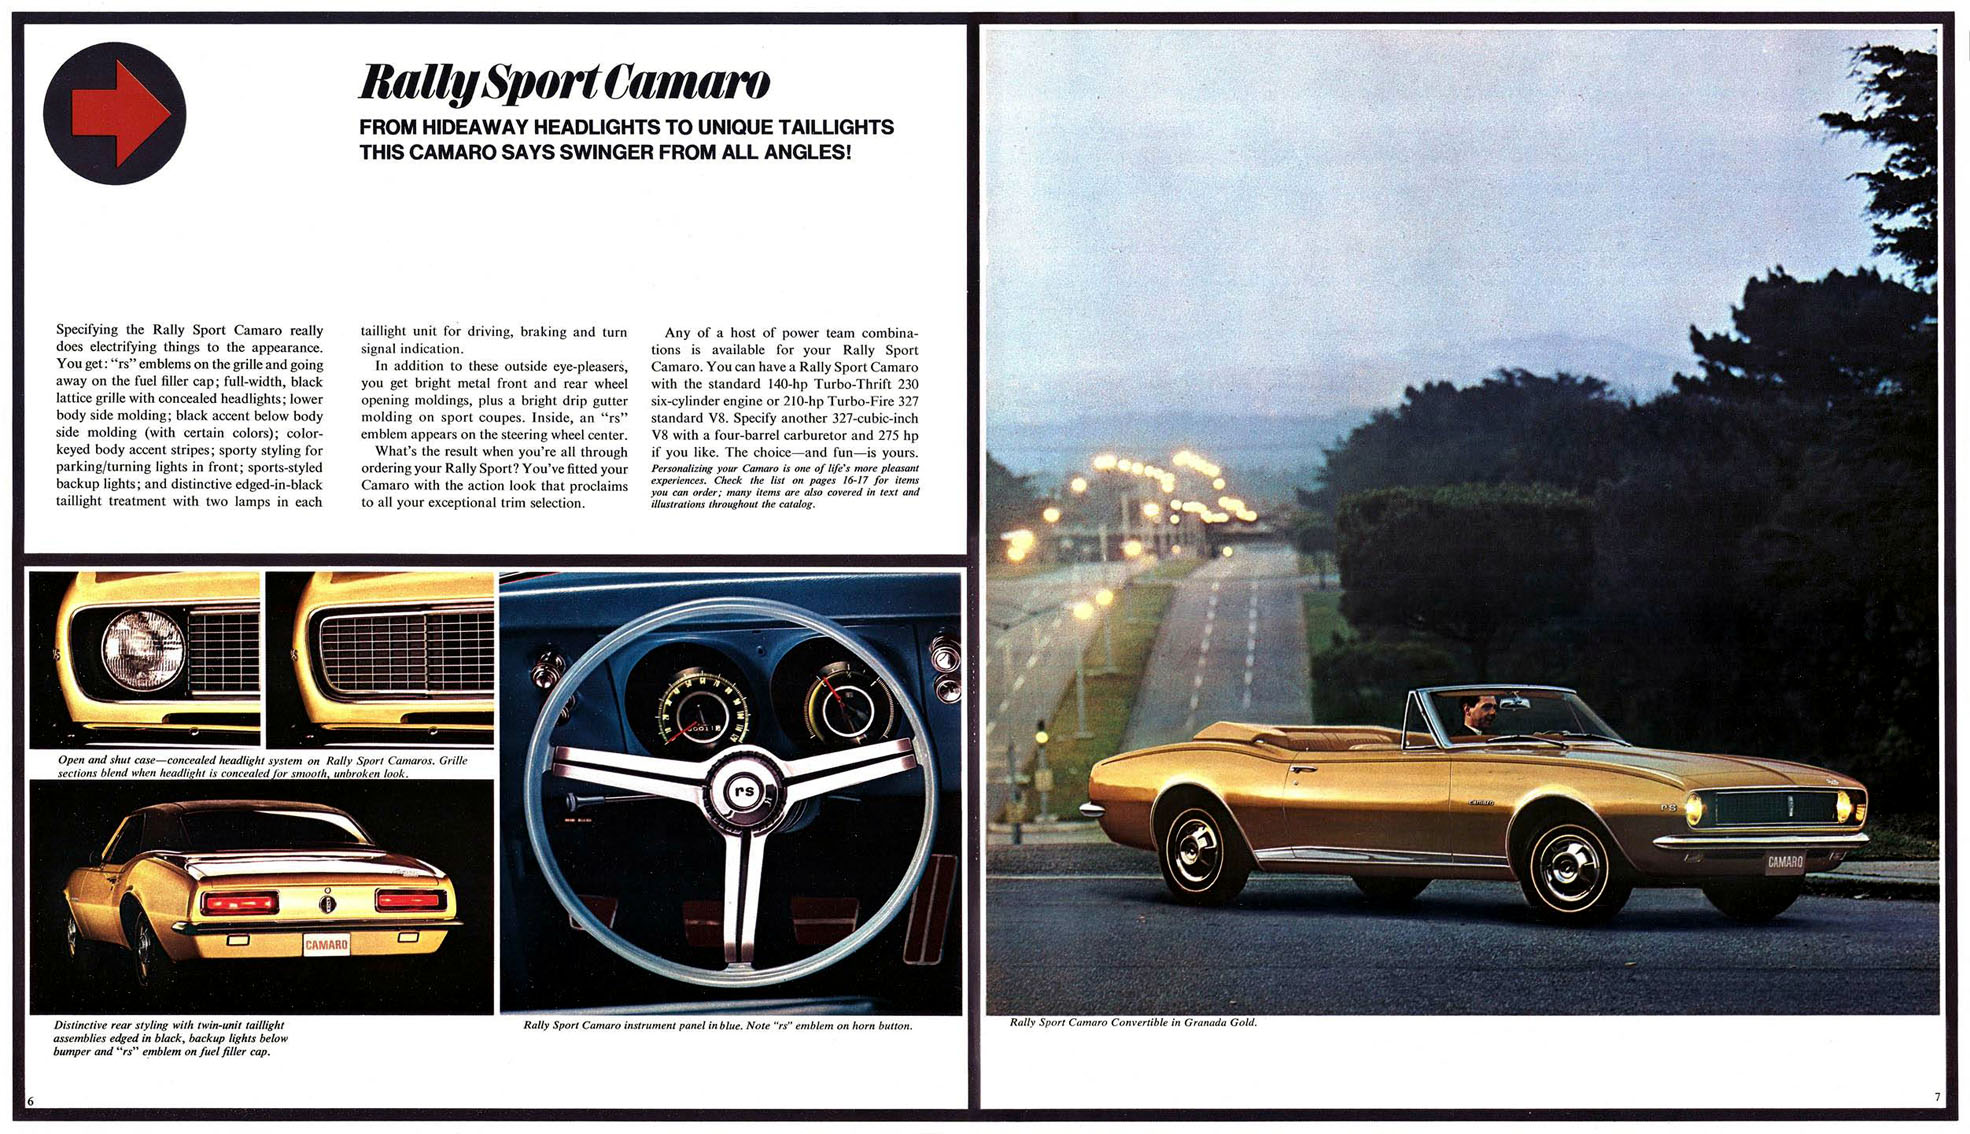 The new Rally Sport Camaro By Chevrolet (1967)